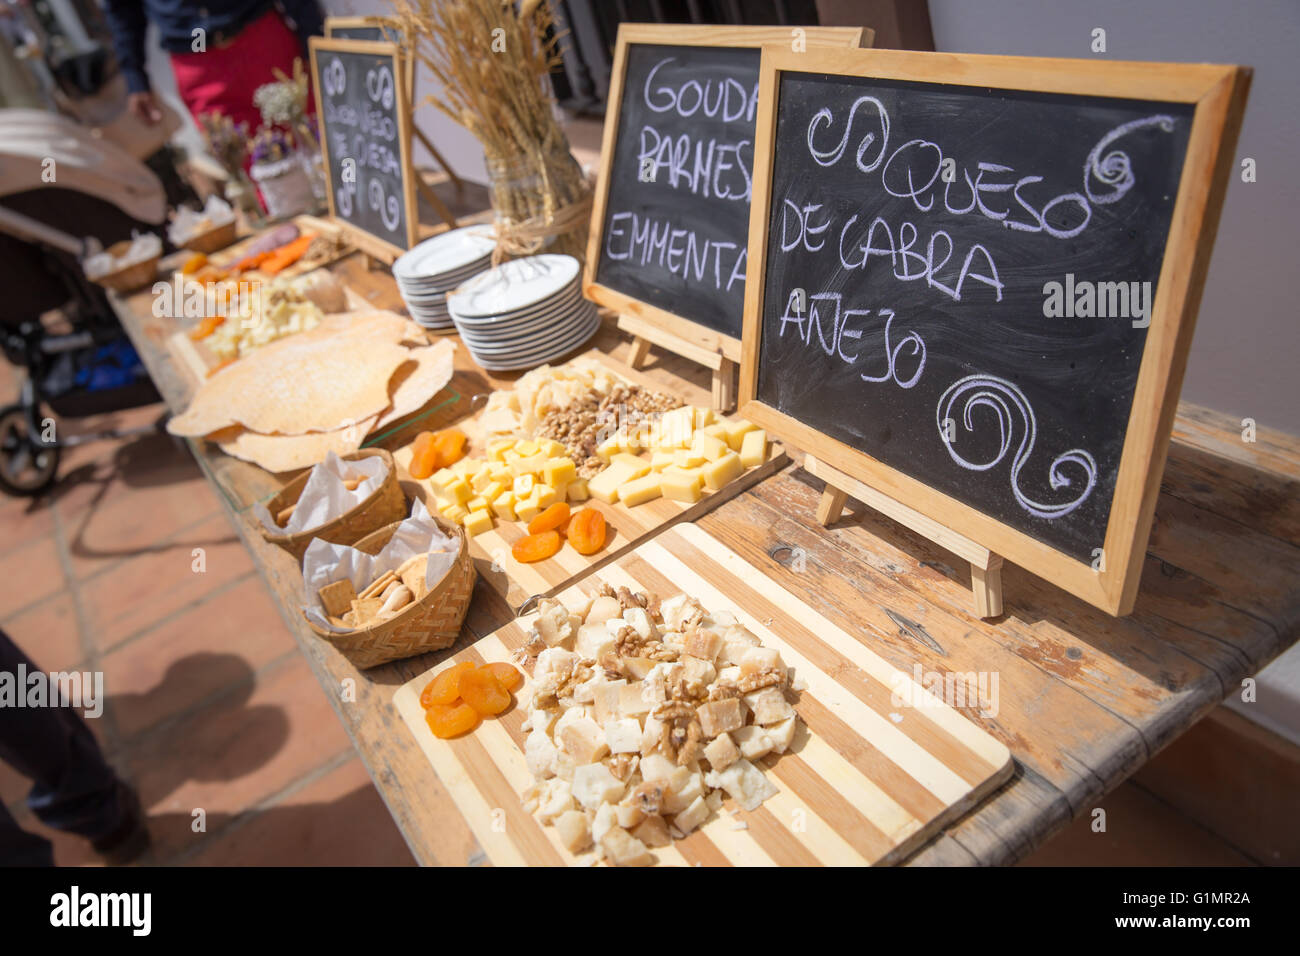 Several kinds of cheese served on vintage wooden table and blackboards written in spanish - Stock Image